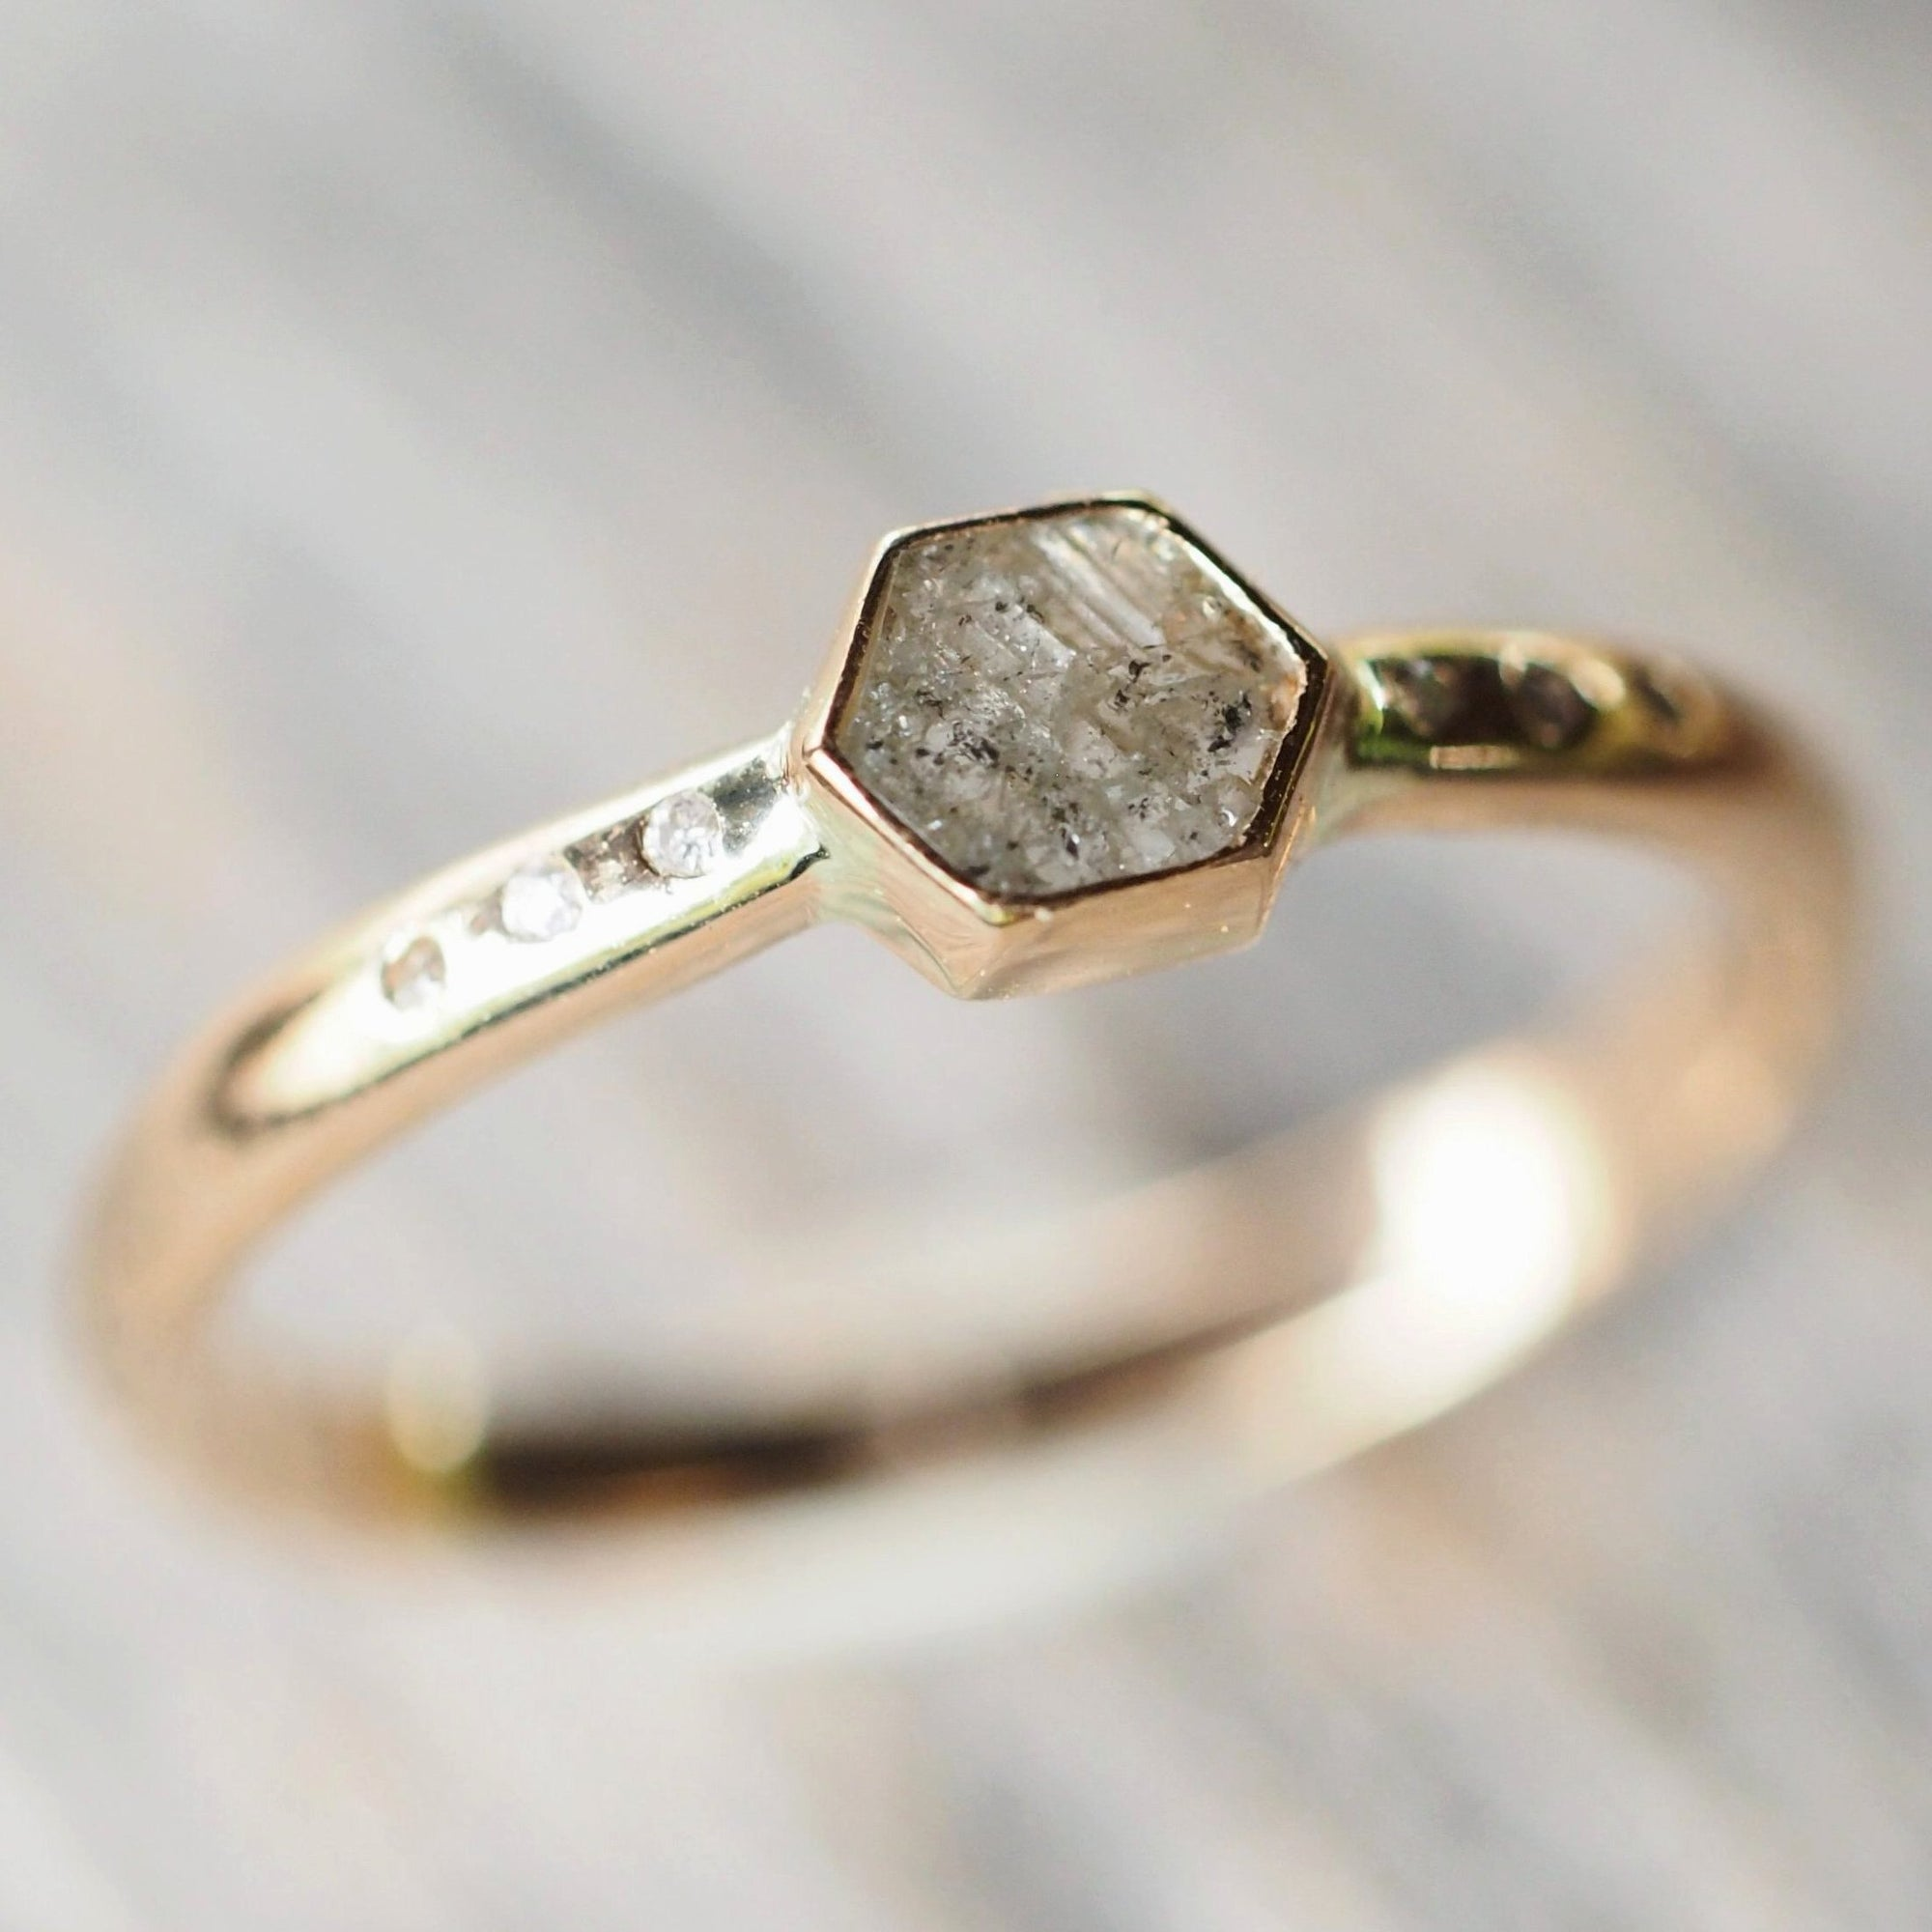 Hexagon Diamond Ring in Gold - Gardens of the Sun Jewelry